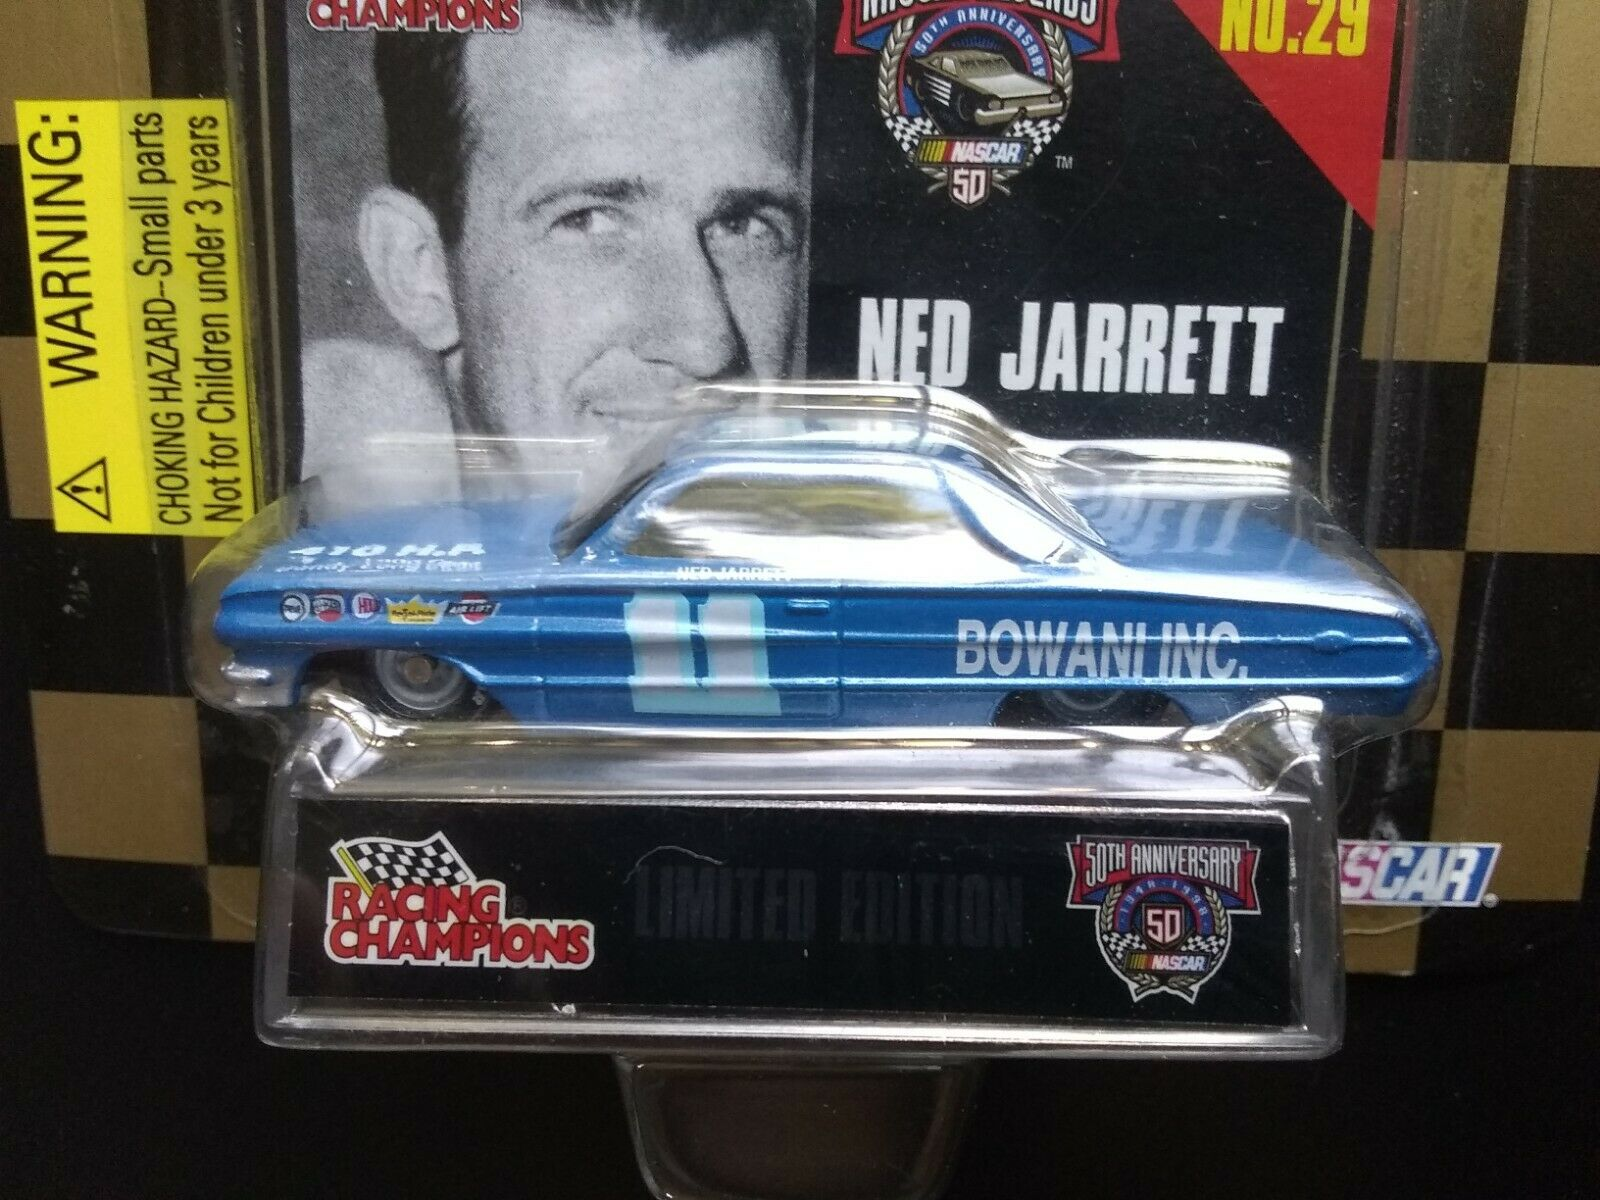 NED JARRETT 1964 Ford Galaxie #11 1998 NASCAR LEGENDS 1/64 Racing Champions Mint